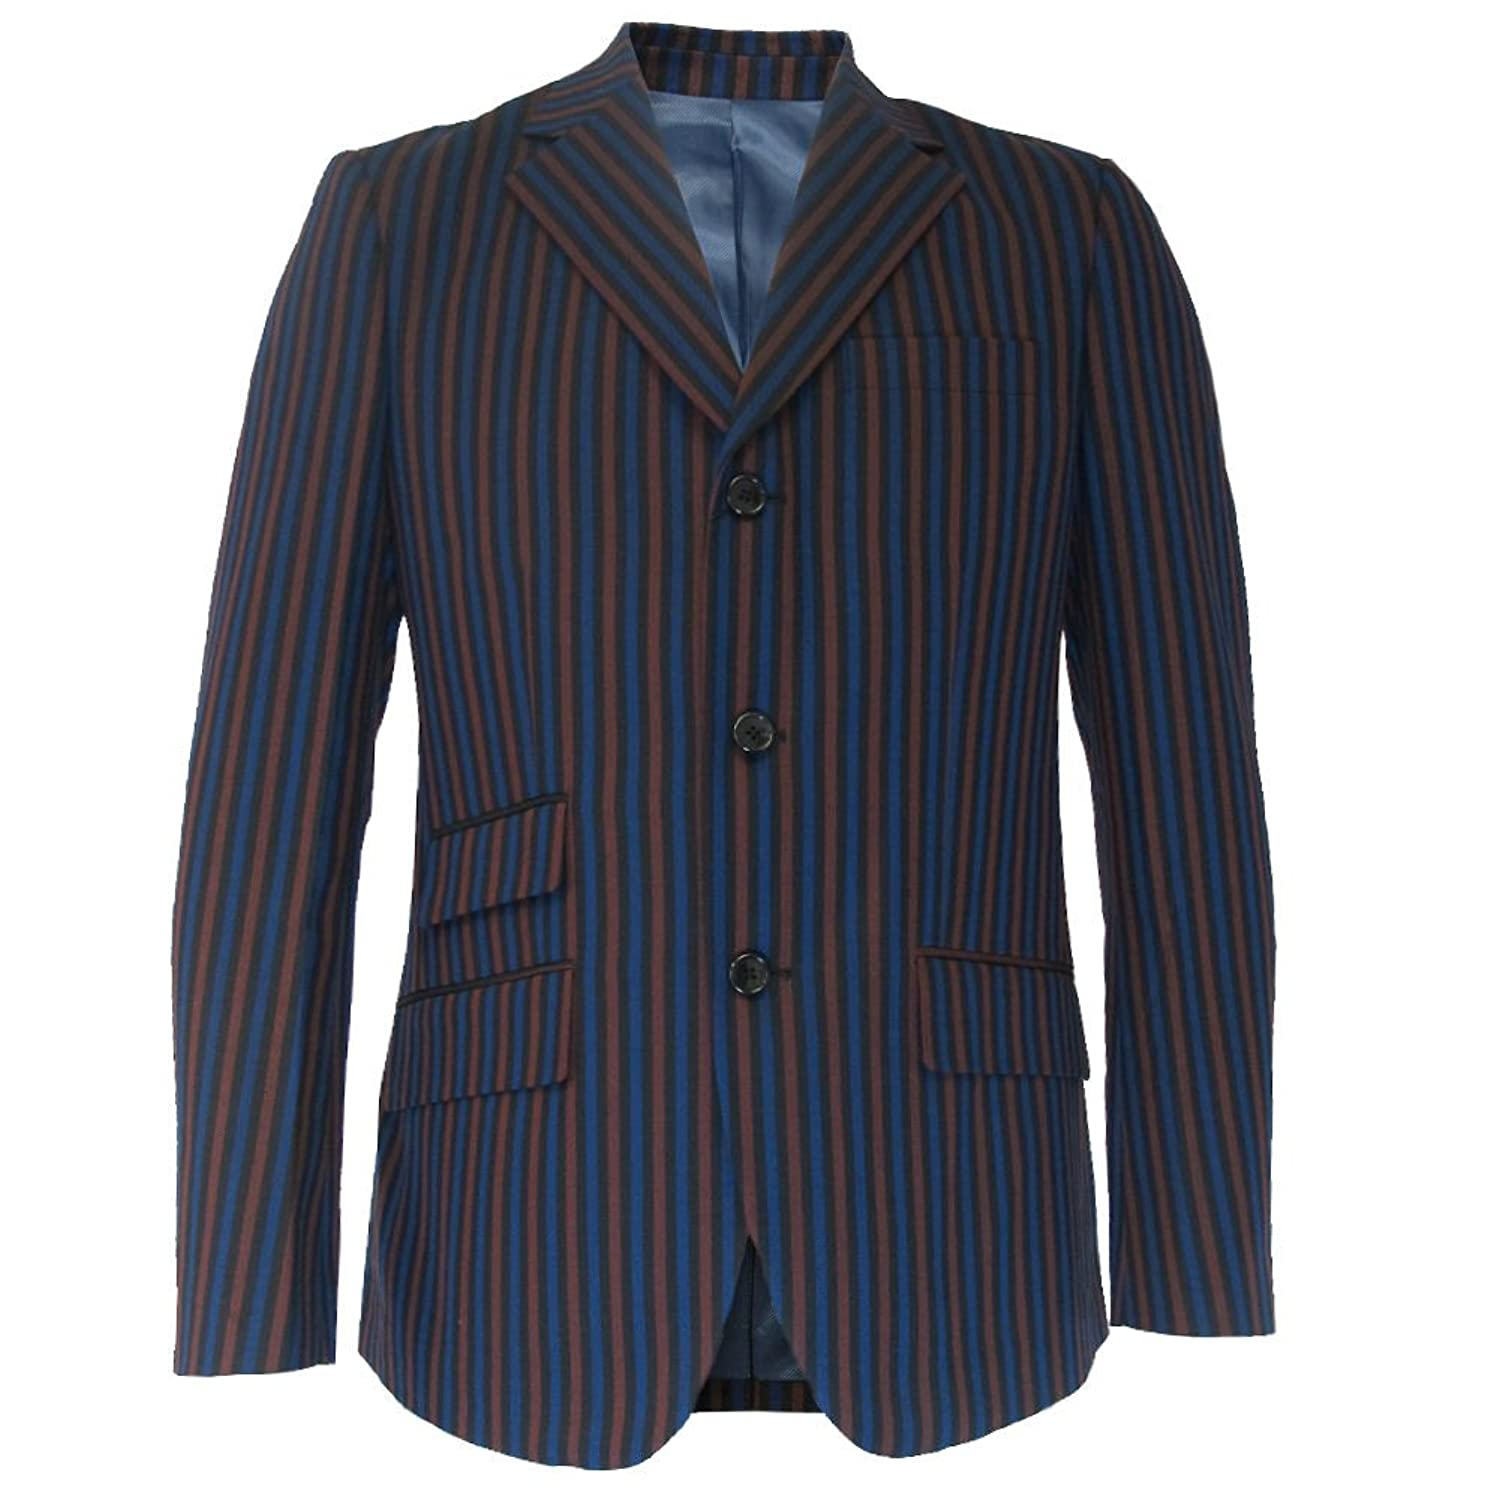 1920s Mens Suits Mens Warrior Striped Classic Mod Boating Blazers/Jackets $129.95 AT vintagedancer.com